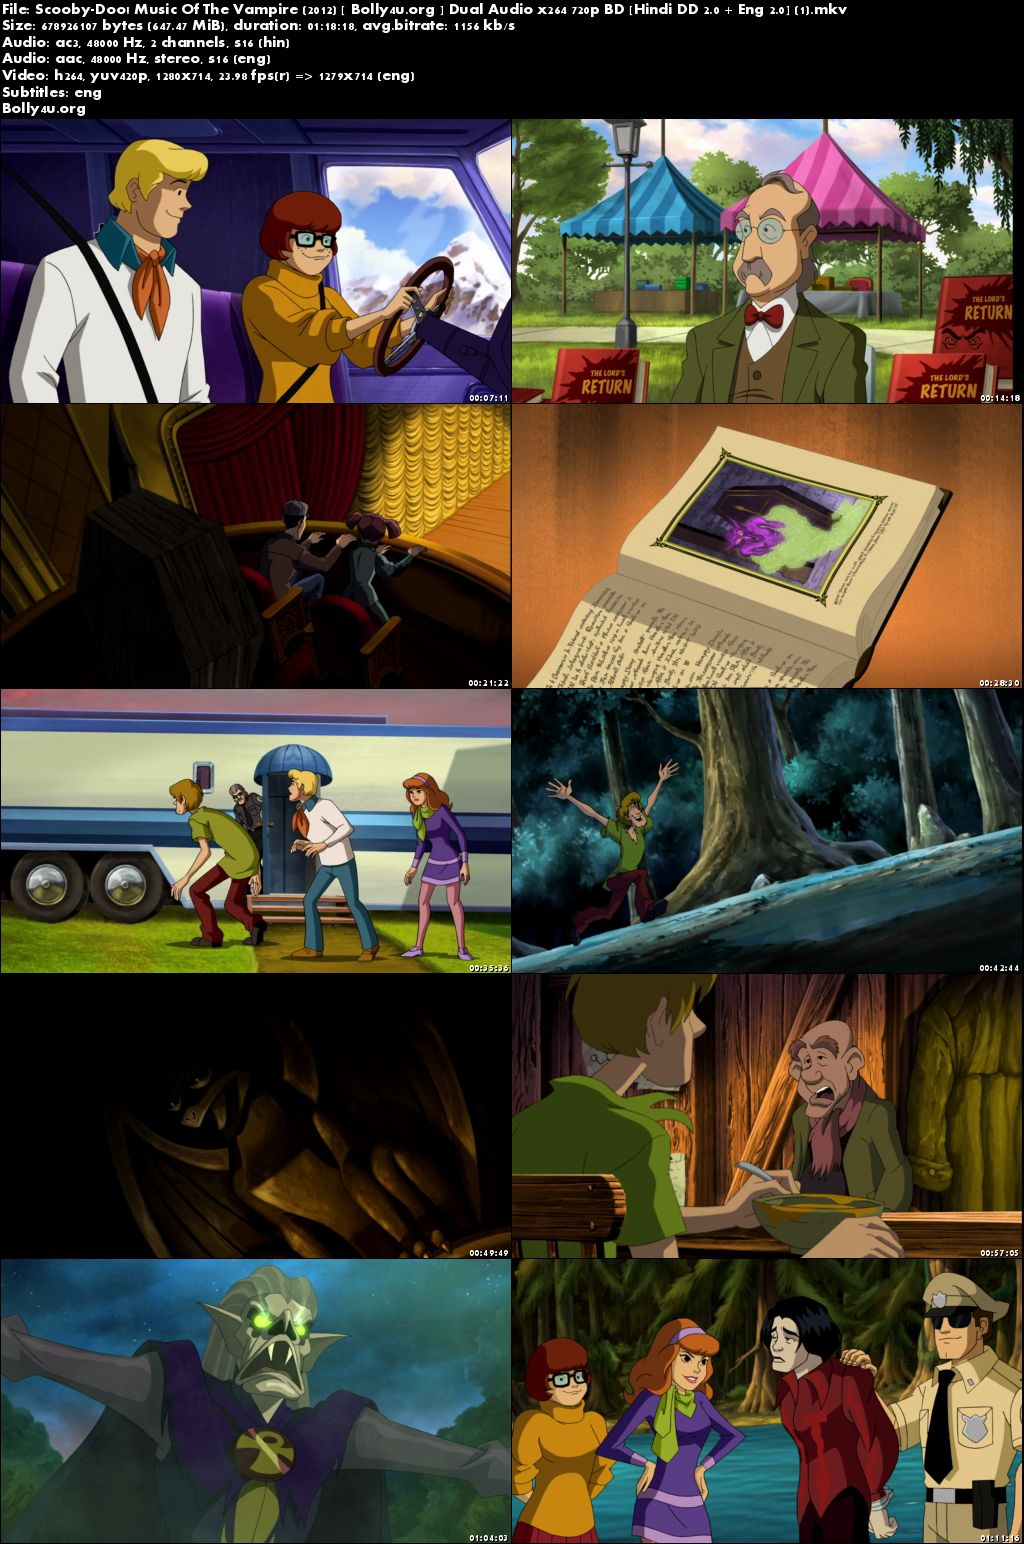 Scooby-Doo Music Of The Vampire 2012 BDRip 250MB Hindi Dual Audio 480p Download